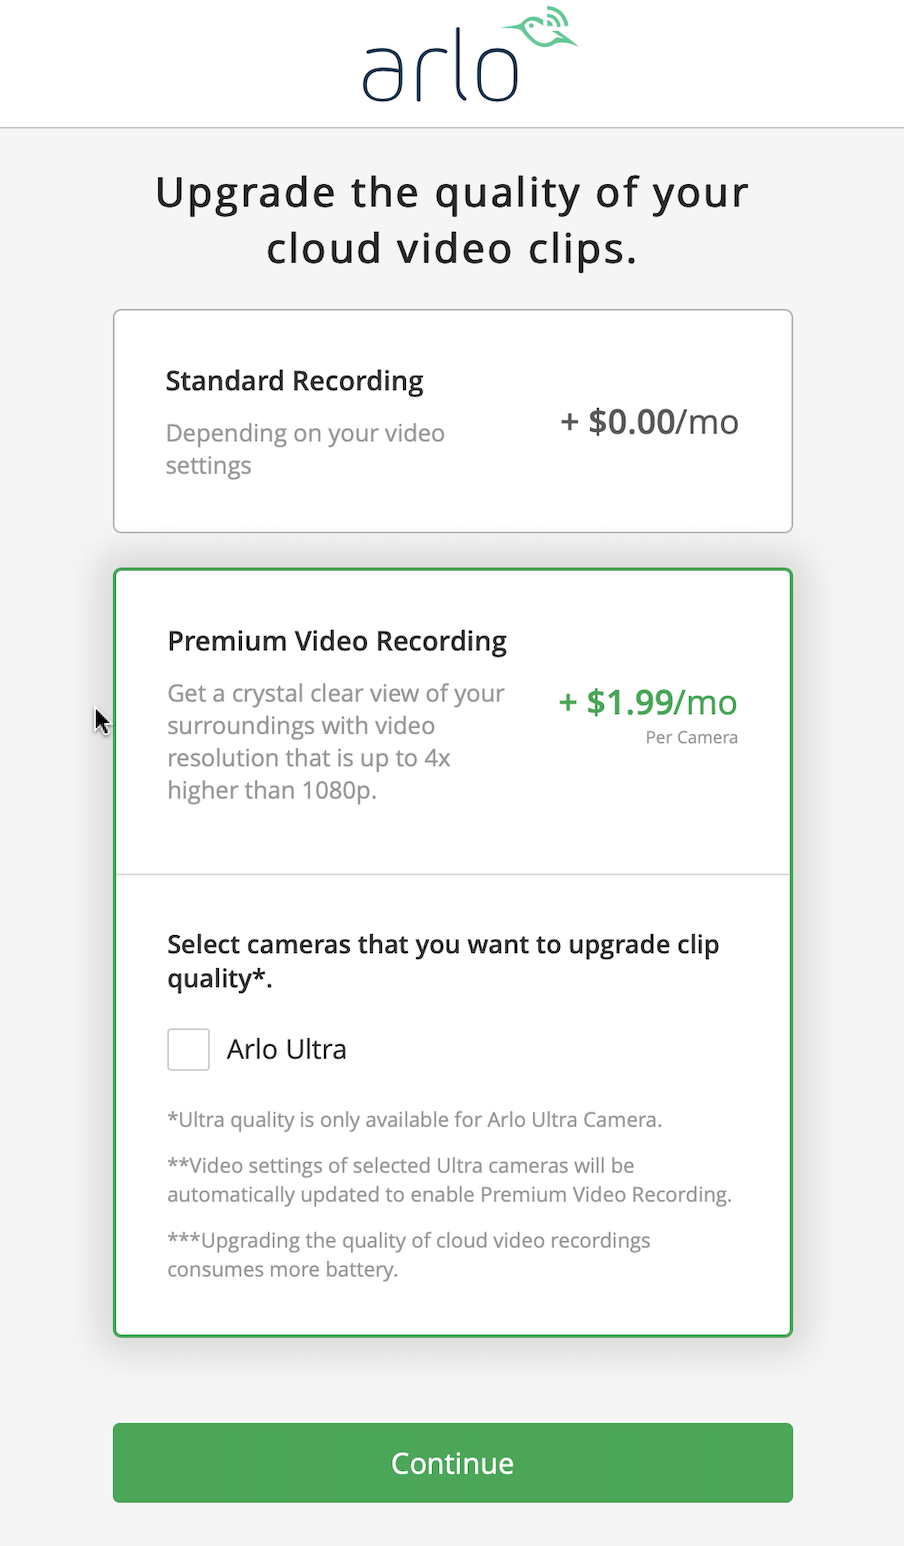 Arlo Premium Video Recording